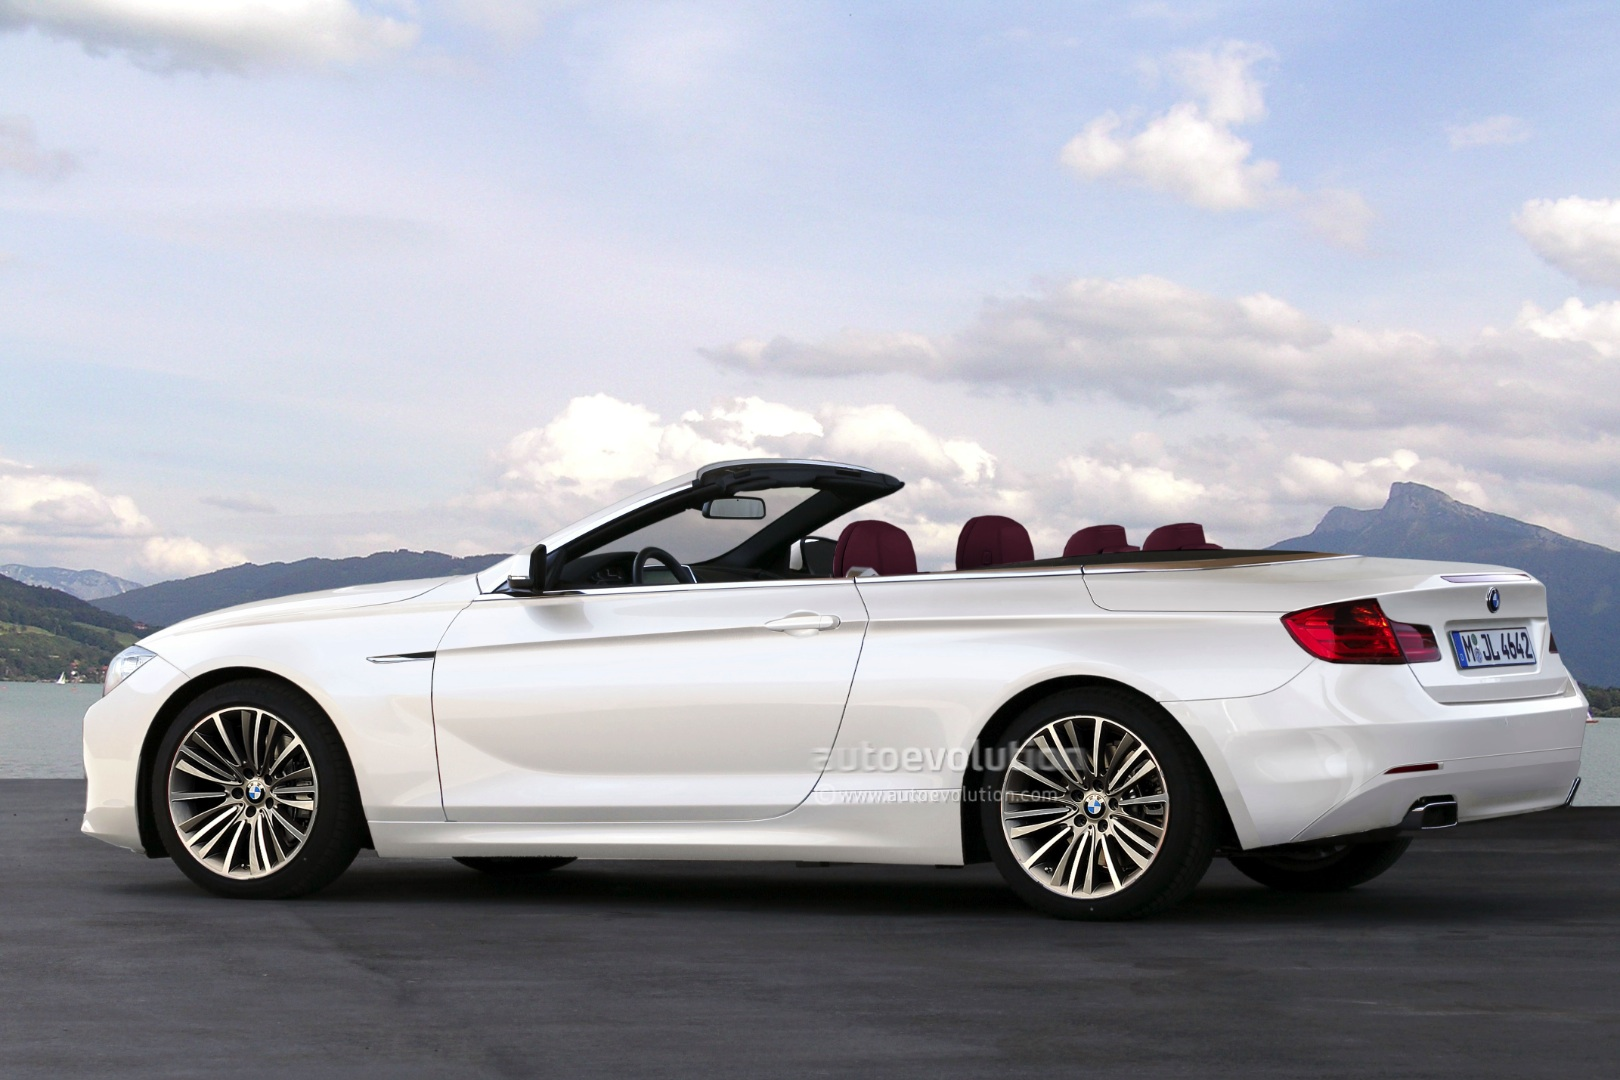 F BMW Series Convertible Rendering Autoevolution - 2013 bmw 4 series convertible